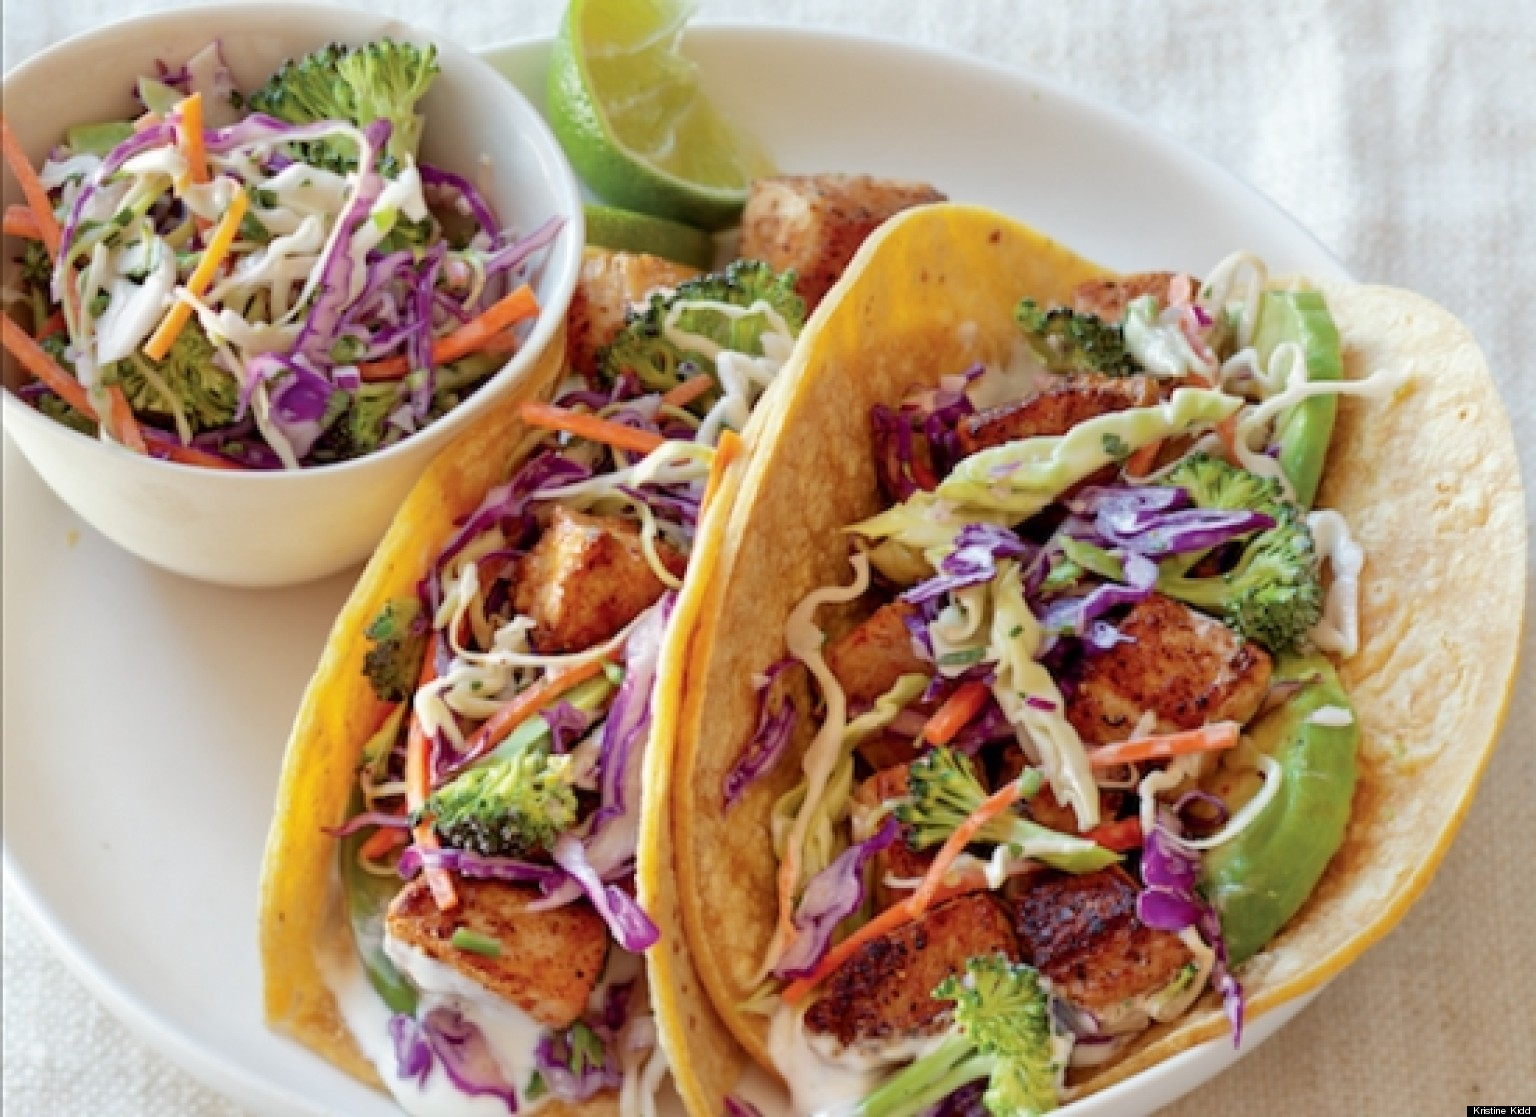 Fish Tacos Recipe With Broccoli Slaw and Lime Cream Sauce | The ...